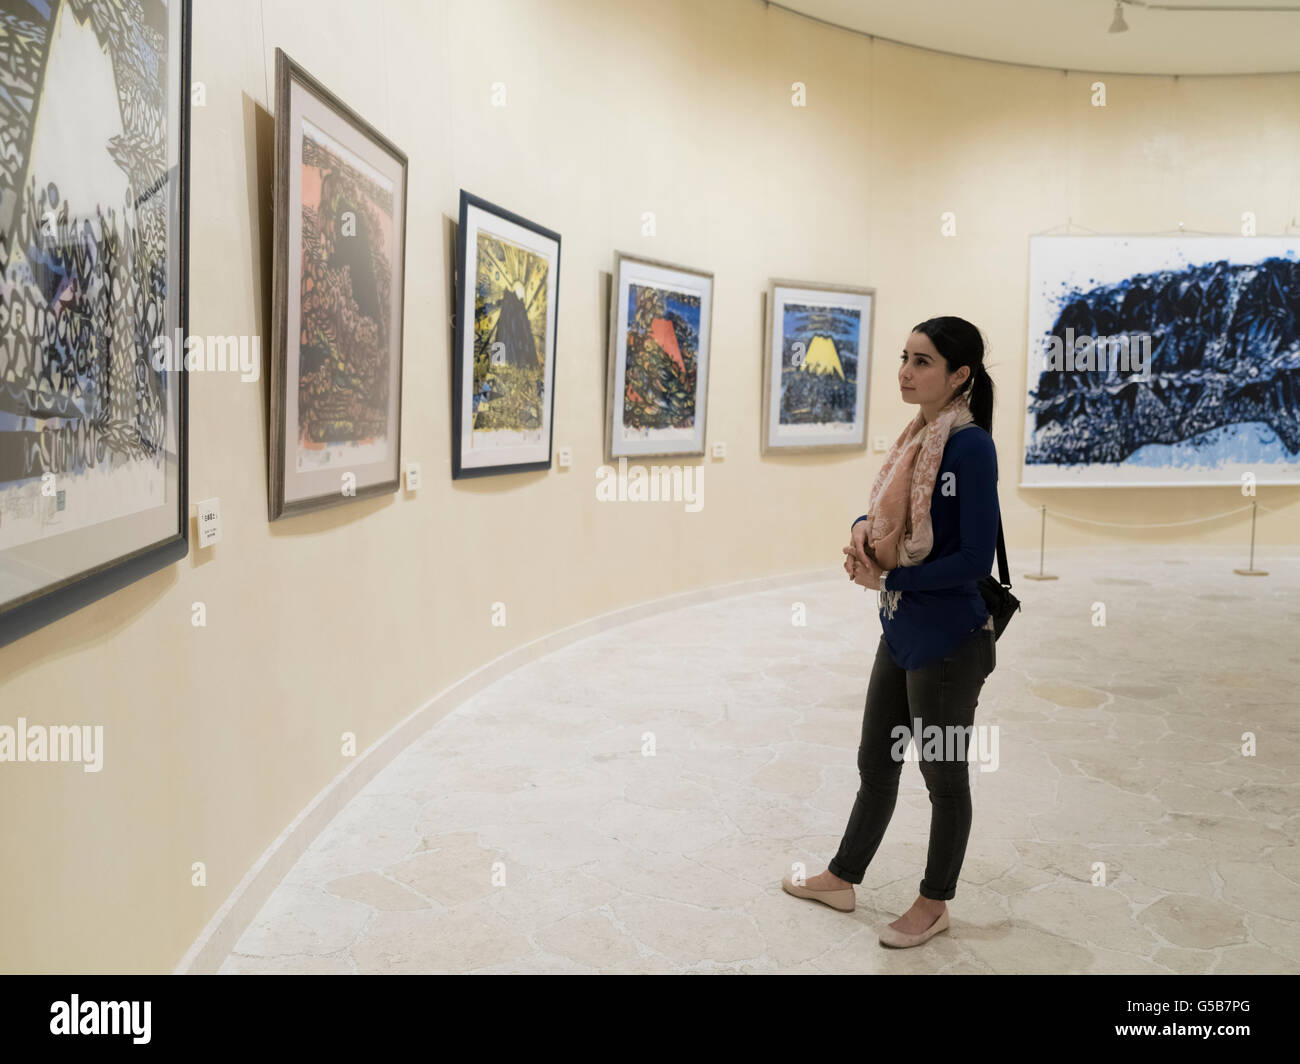 Bokunen Art Museum in Depot Island shopping and dining area, Mihama American Village, Chatan, Okinawa, Japan - Stock Image